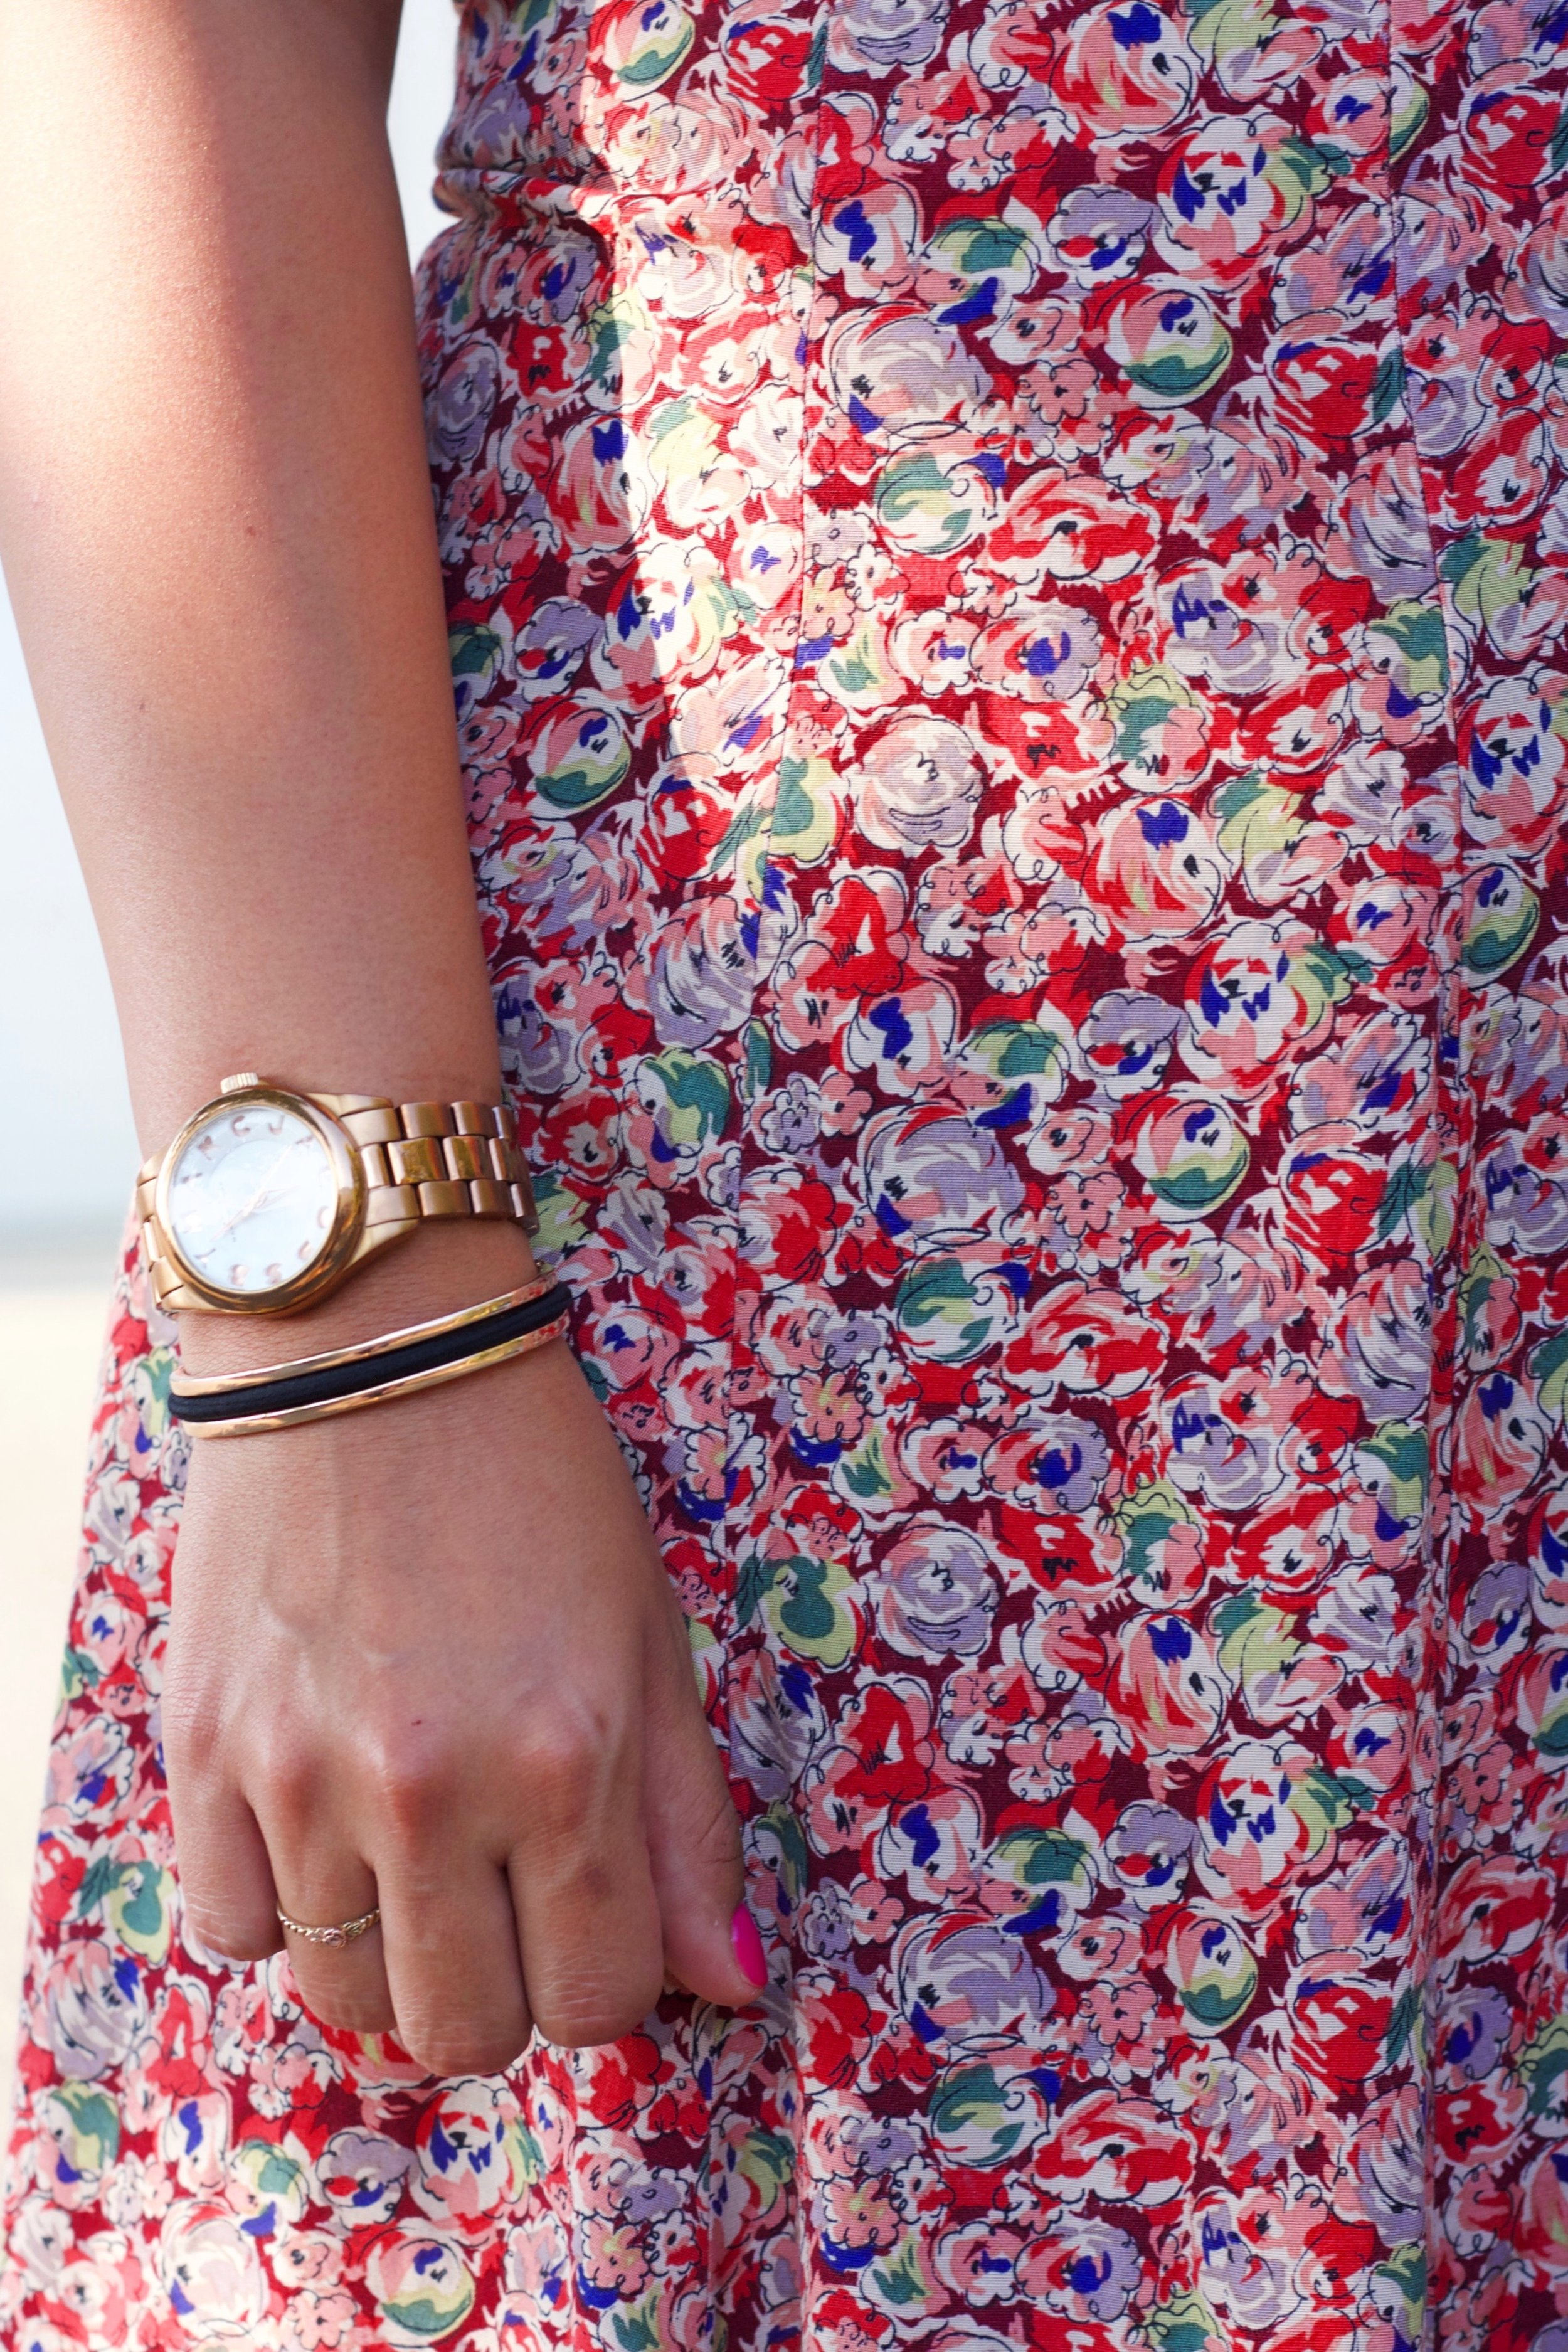 Gold Accessory Details with Recycled Fashion.